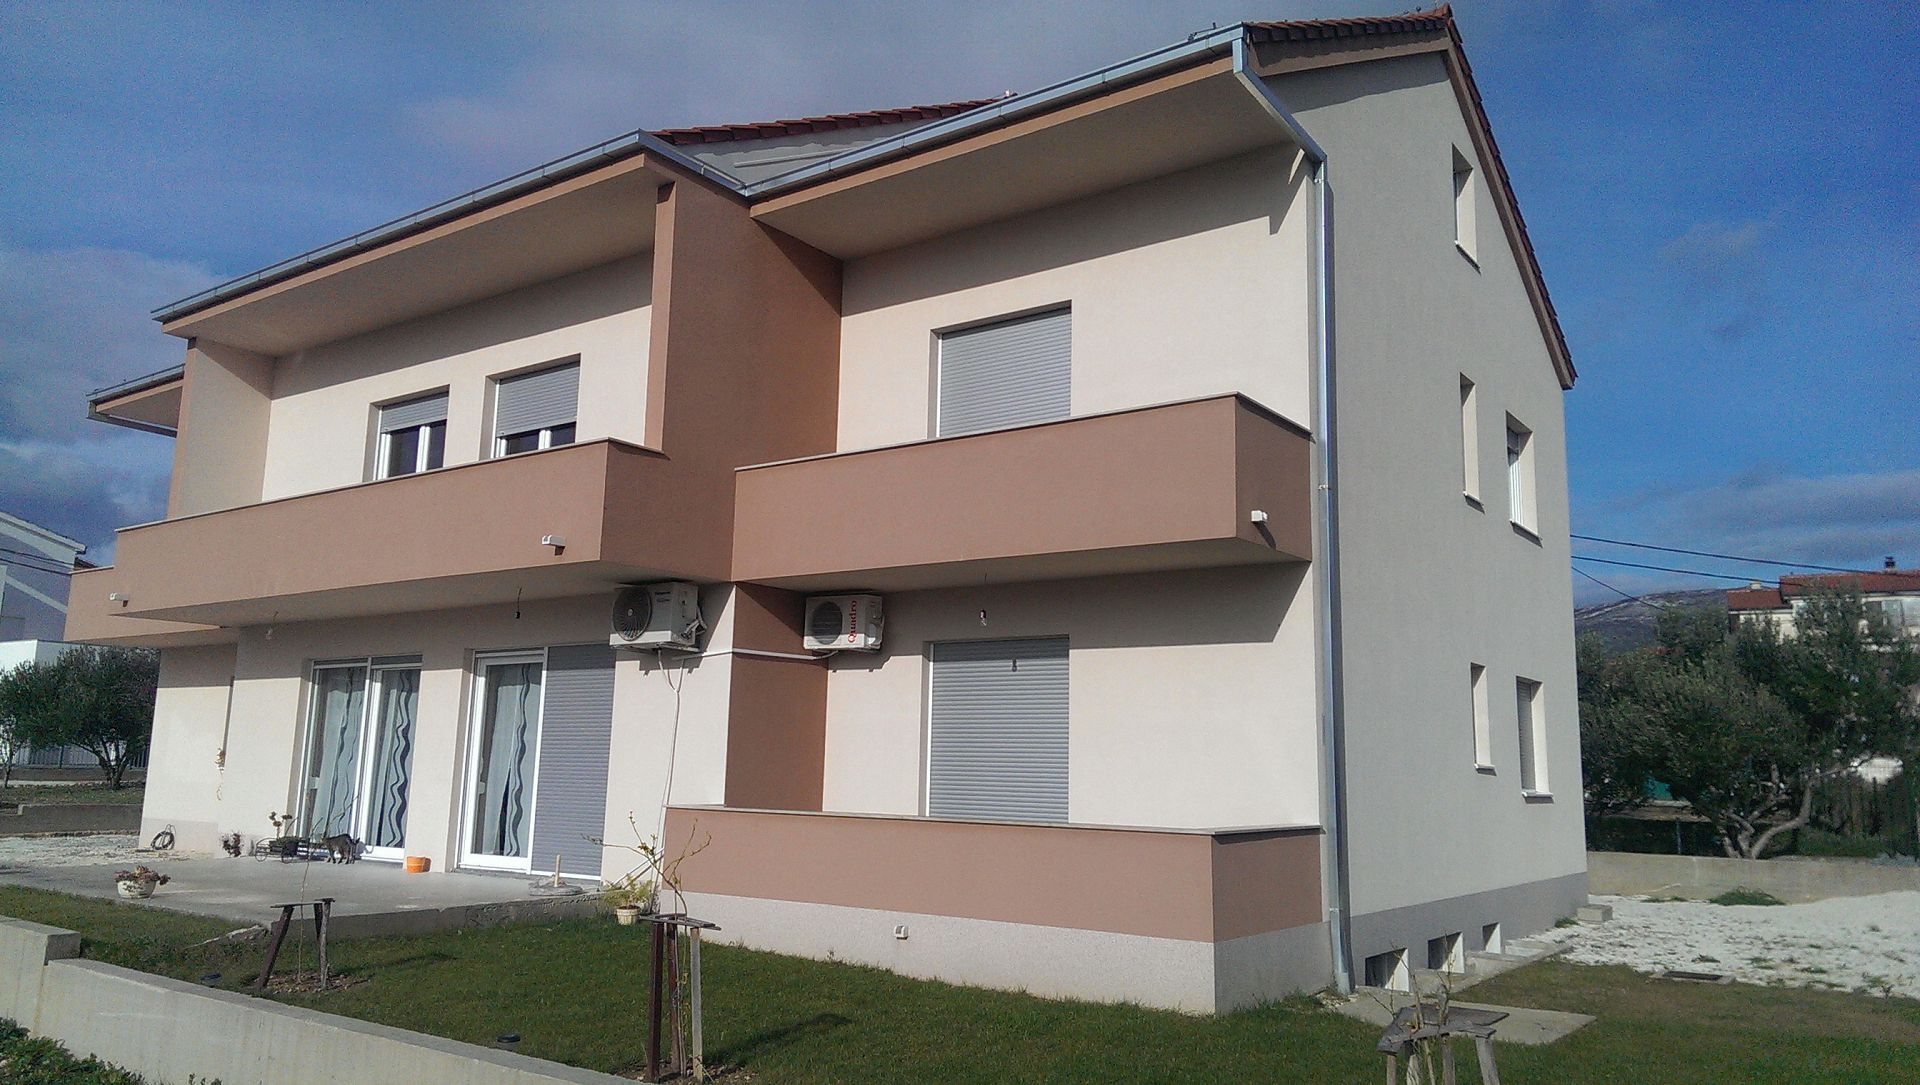 36196 - Kastel Stafilic - Appartements Croatie